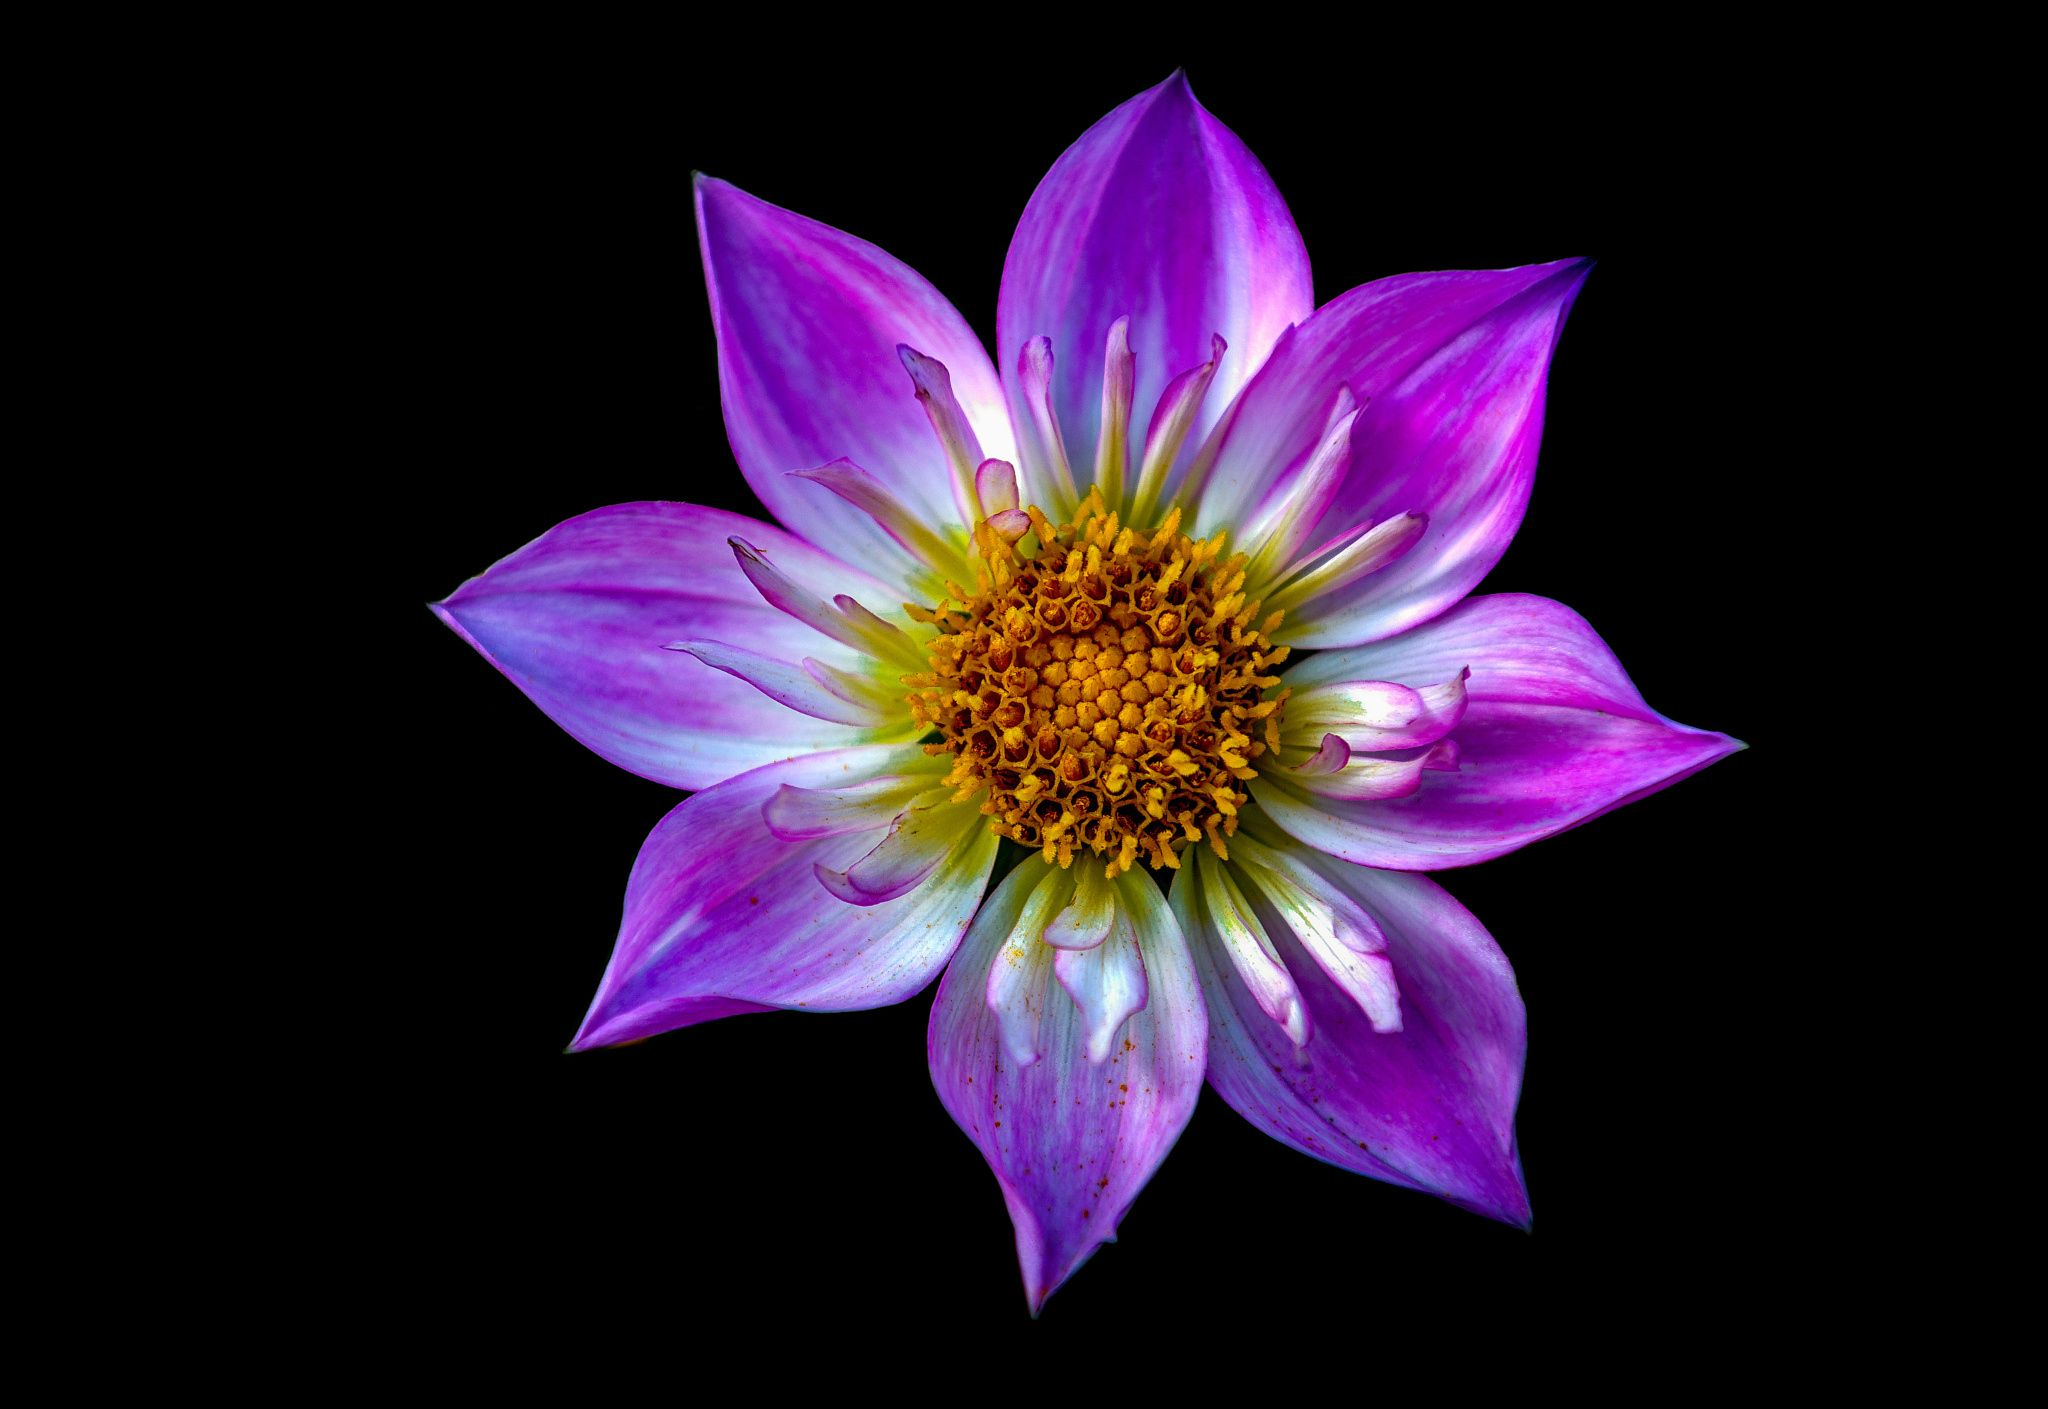 Dhalia by Ido Meirovich on 500px Flower photos, National